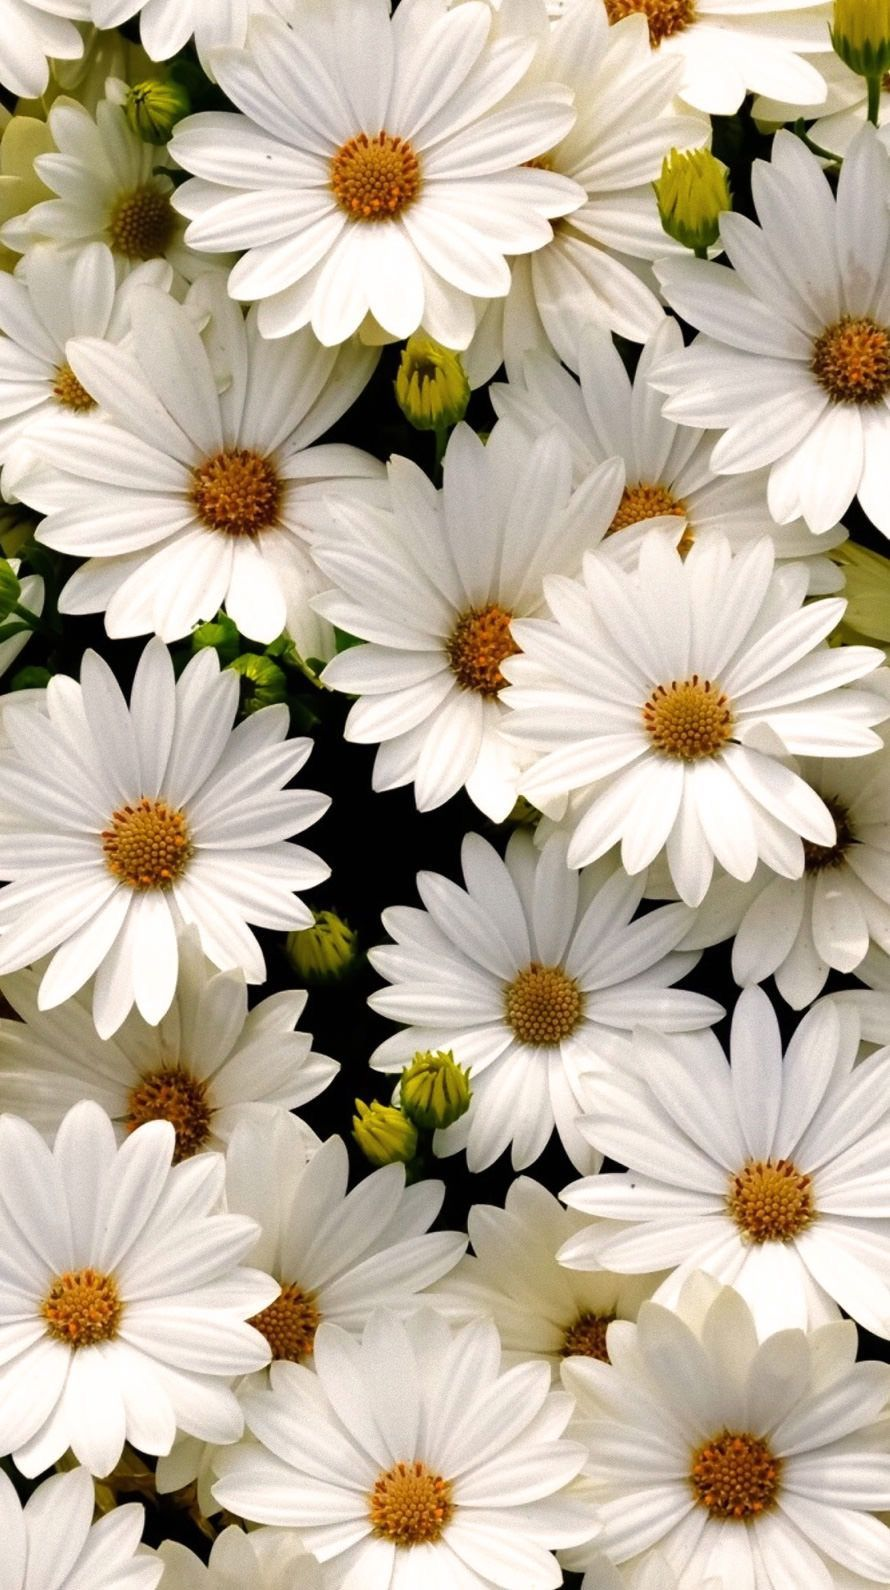 Daisy Aesthetic Wallpapers Top Free Daisy Aesthetic